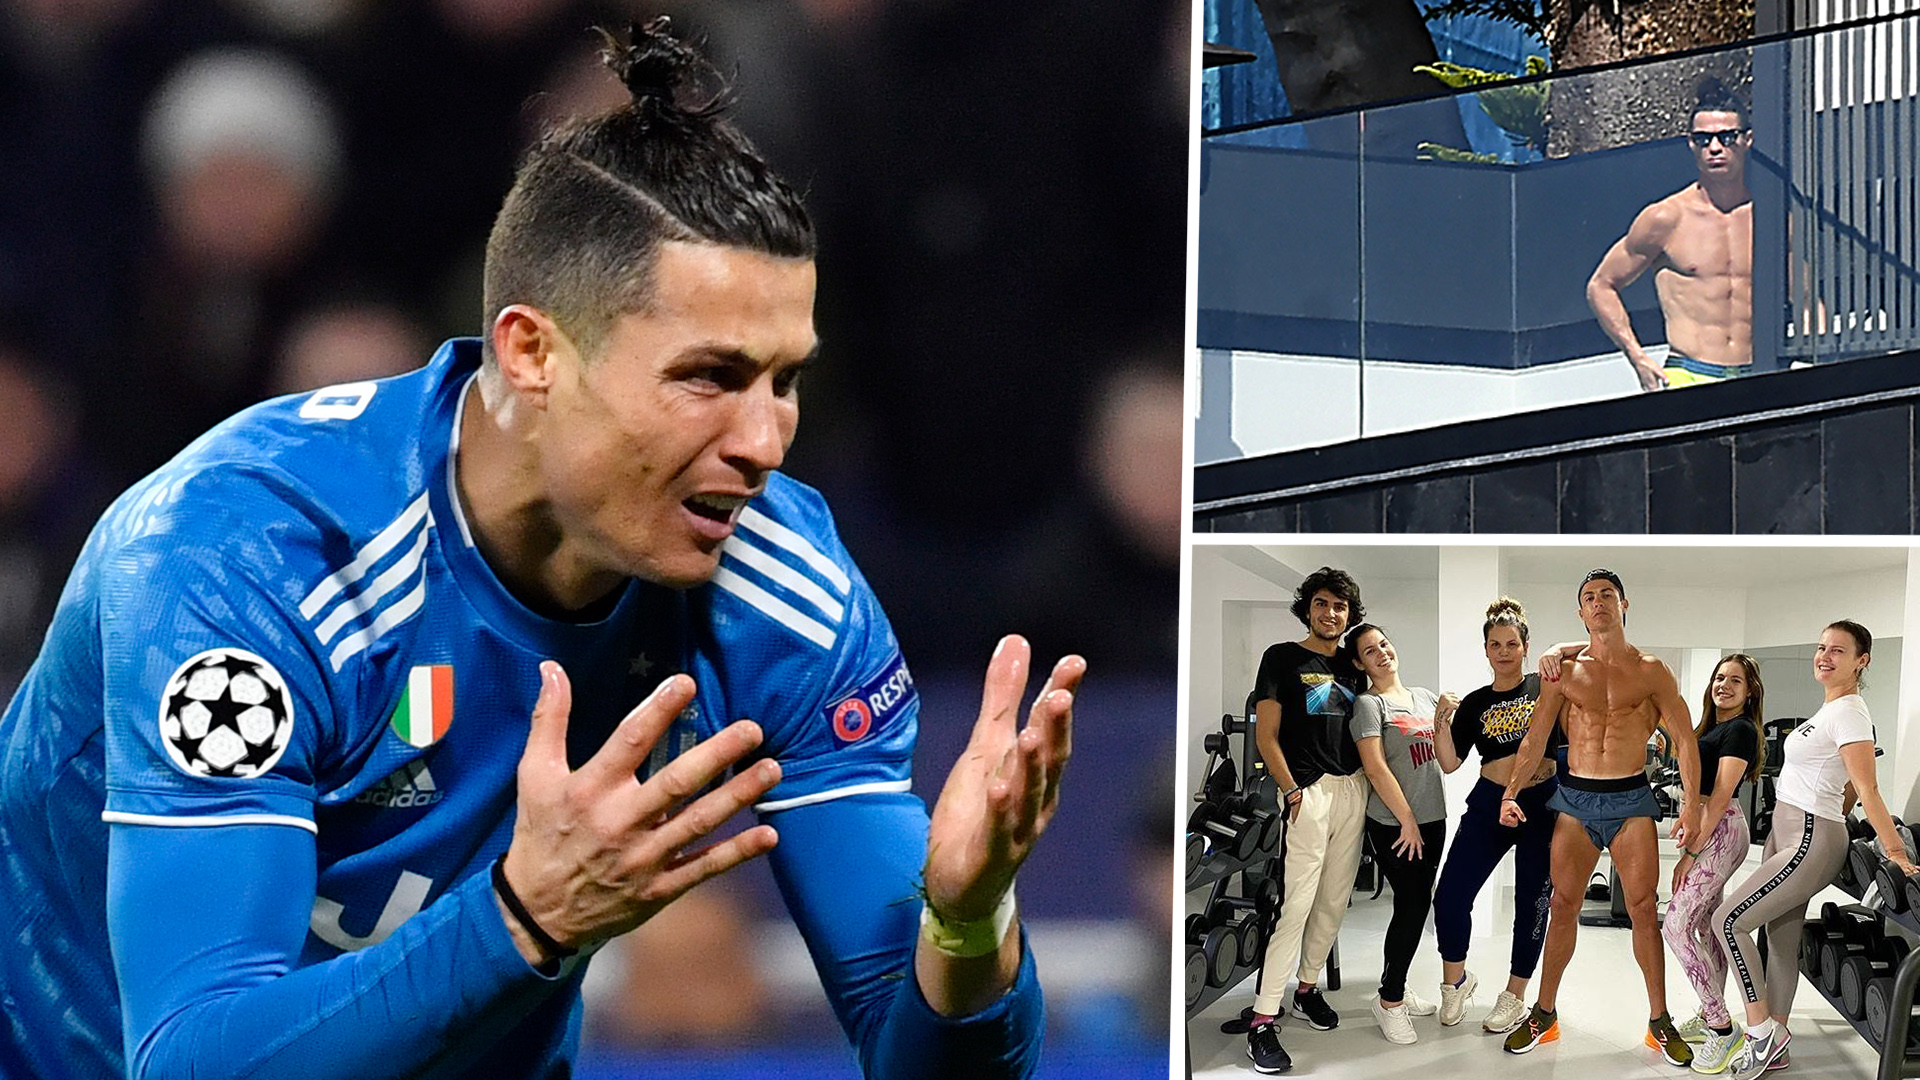 Ronaldo Only Appears To Be Taking Pictures By The Pool Juventus Star S Quarantine Behaviour Criticised Goal Com